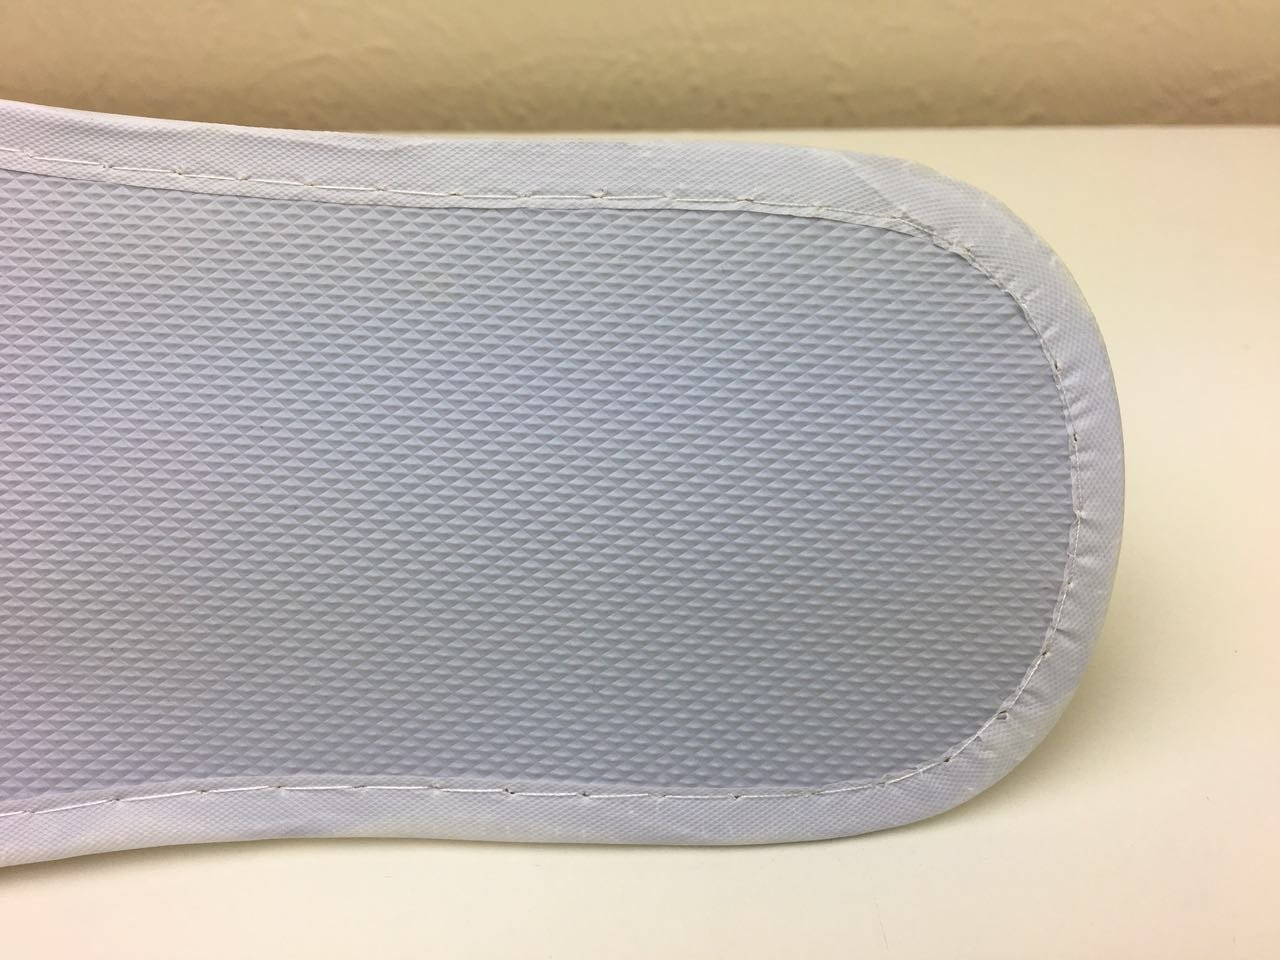 Huini Disposable Cotton Slippers Salon / SPA / Pedicure (Open Toes) 12 Pairs by HUINI by HUINI